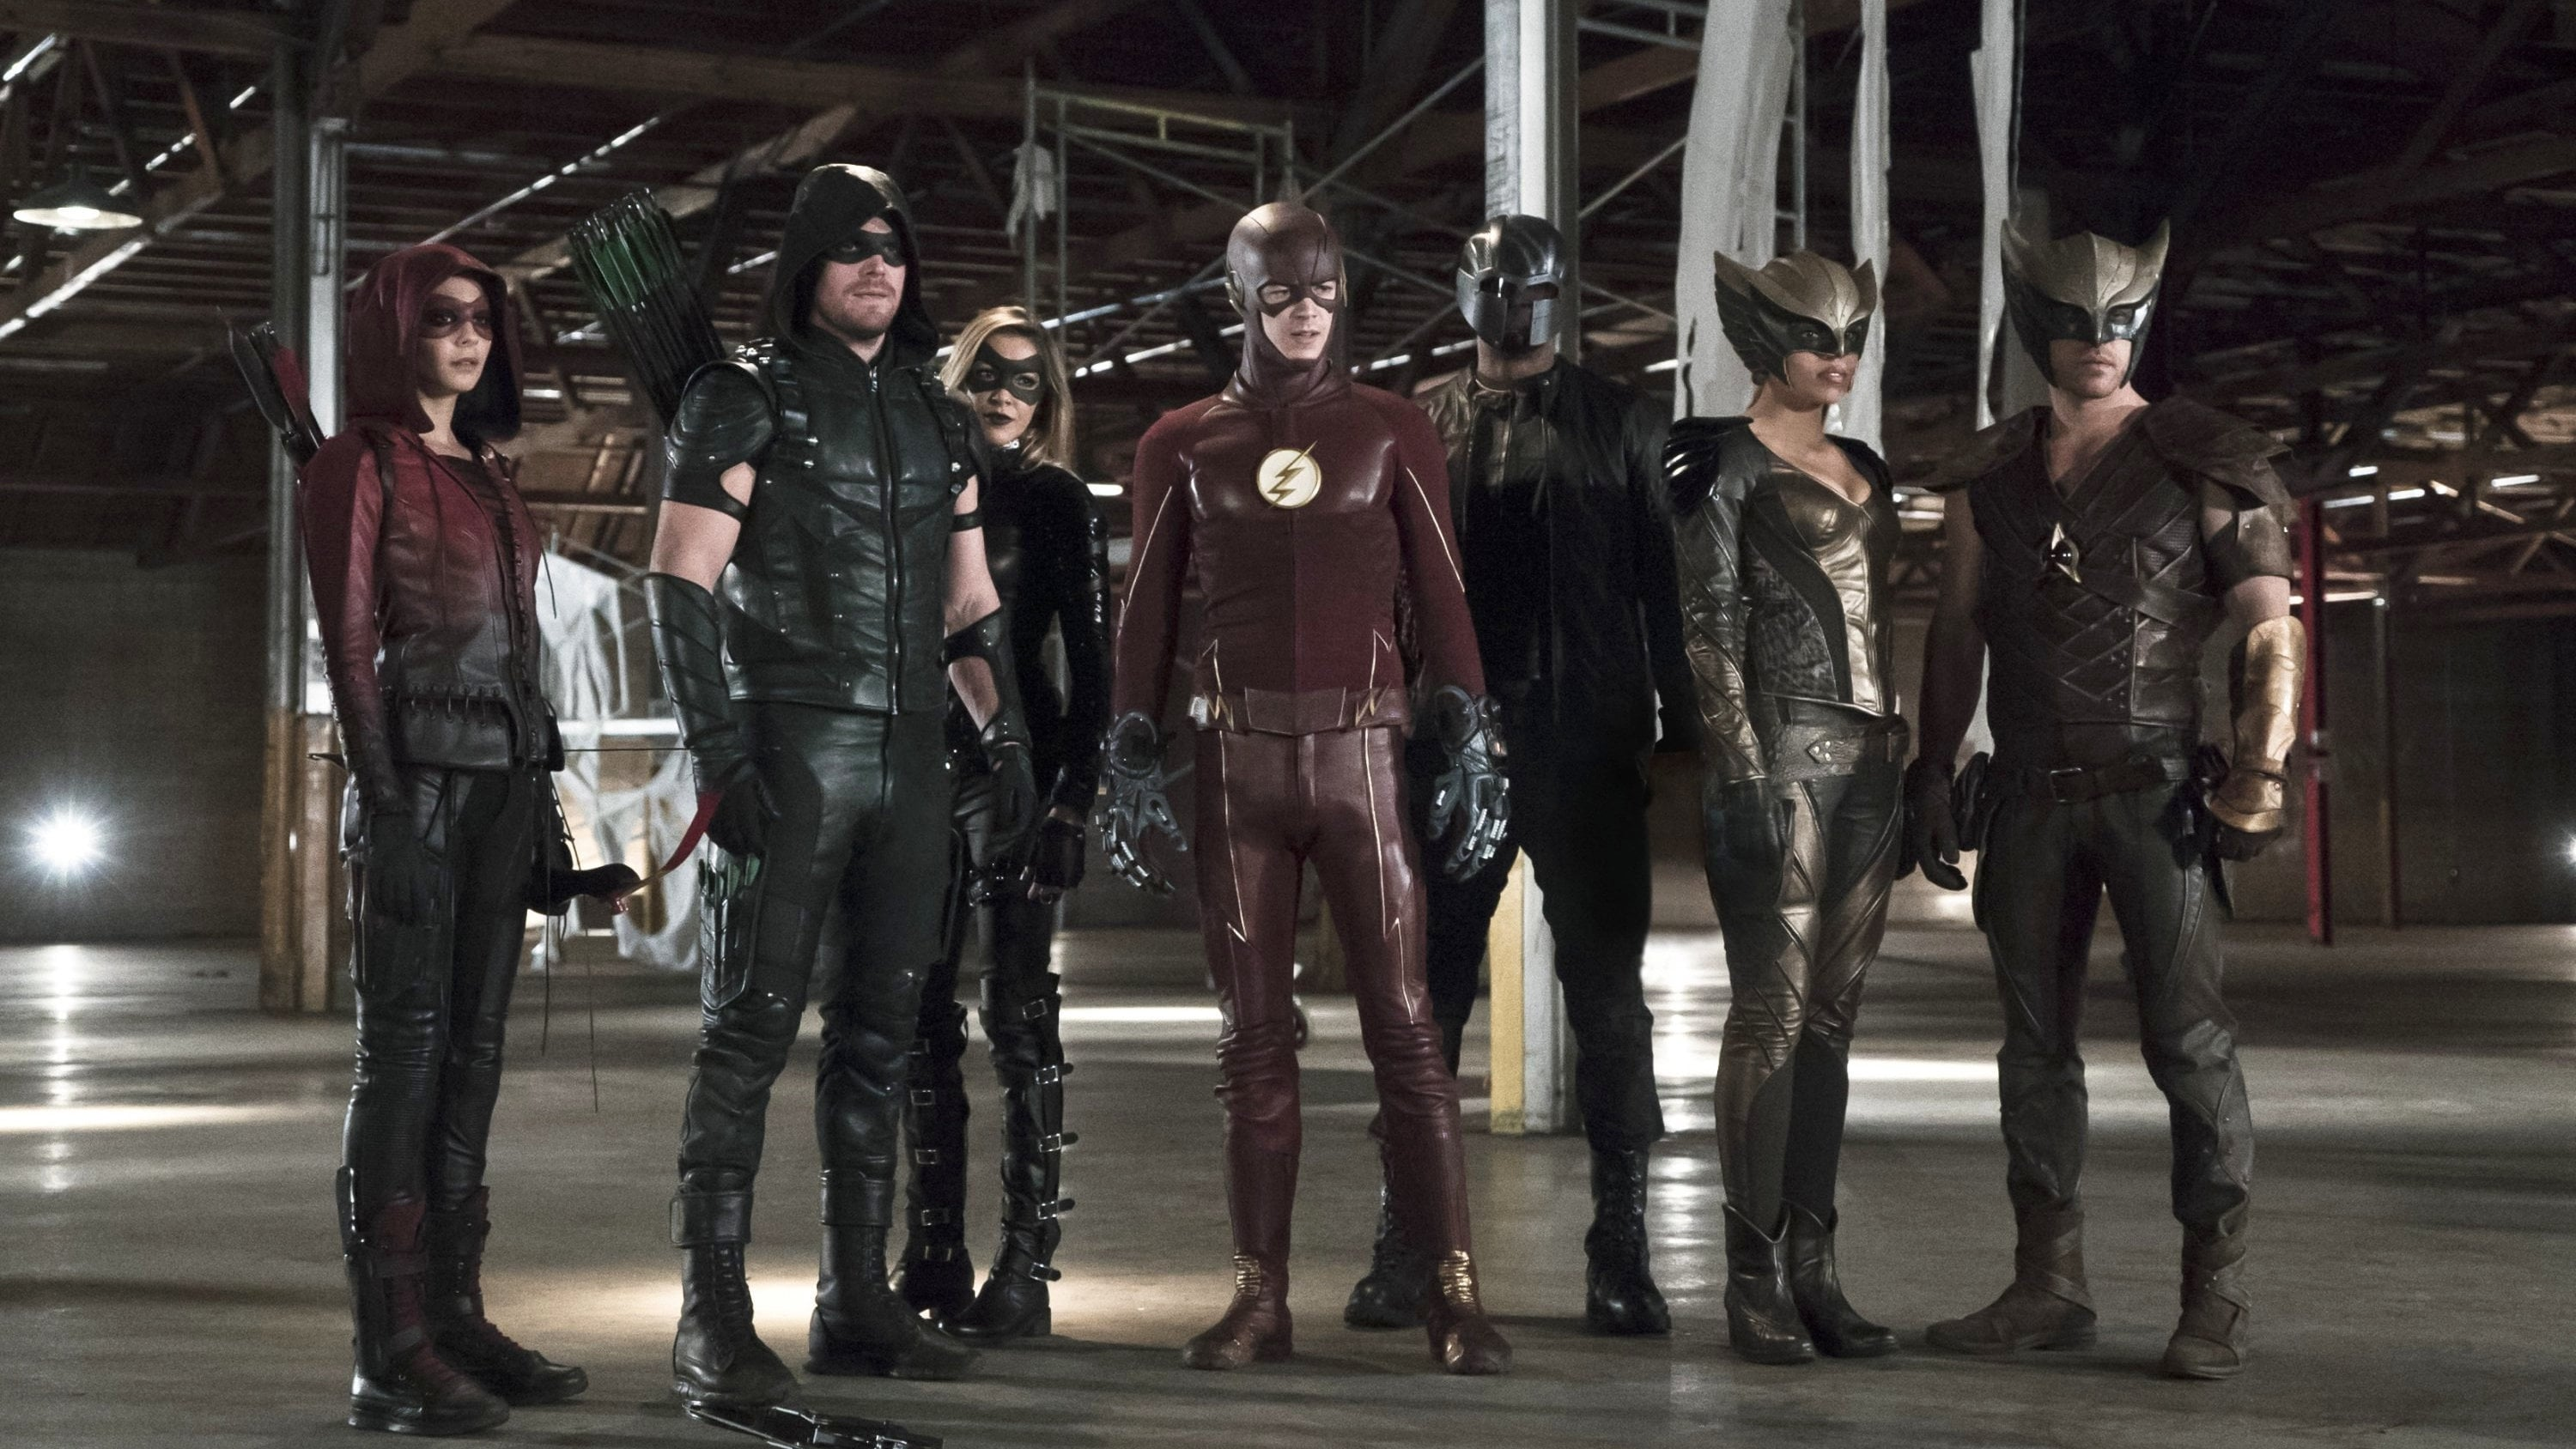 Arrow - Season 4 Episode 8 : Legends of Yesterday (2)